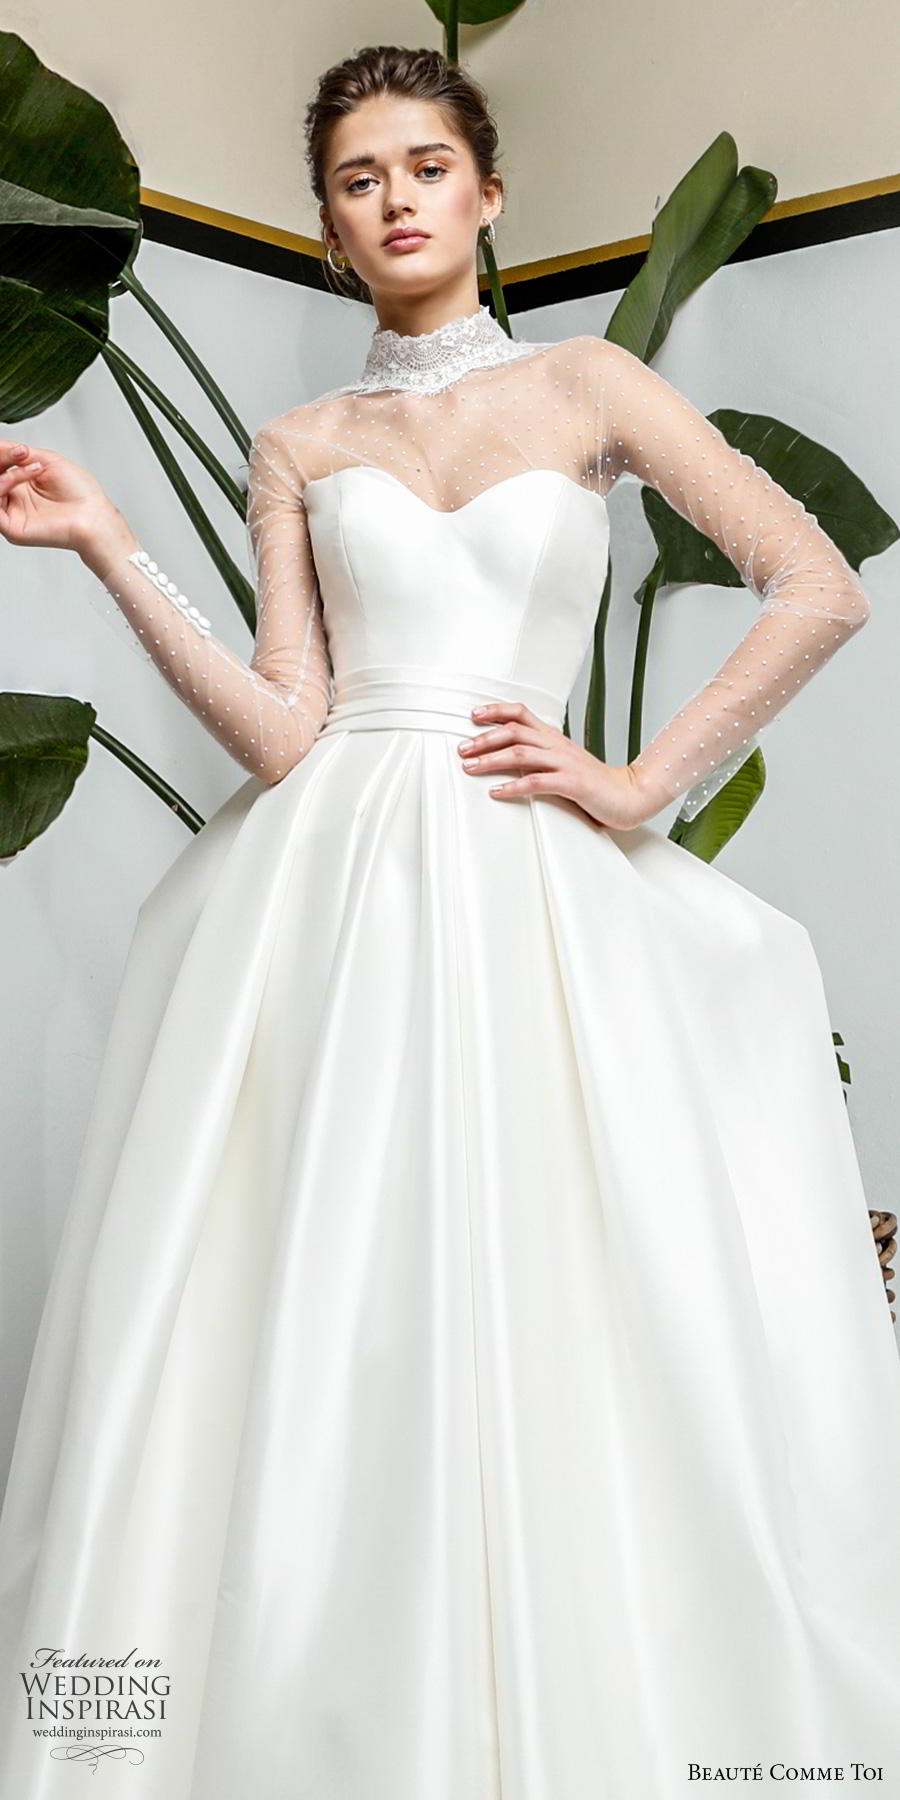 beaute comme toi 2019 bridal long sleeves illusion high neck sweetheart neckline simple minimalist romantic princess ball gown a  line wedding dress sheer button back chapel train (myriam) lv